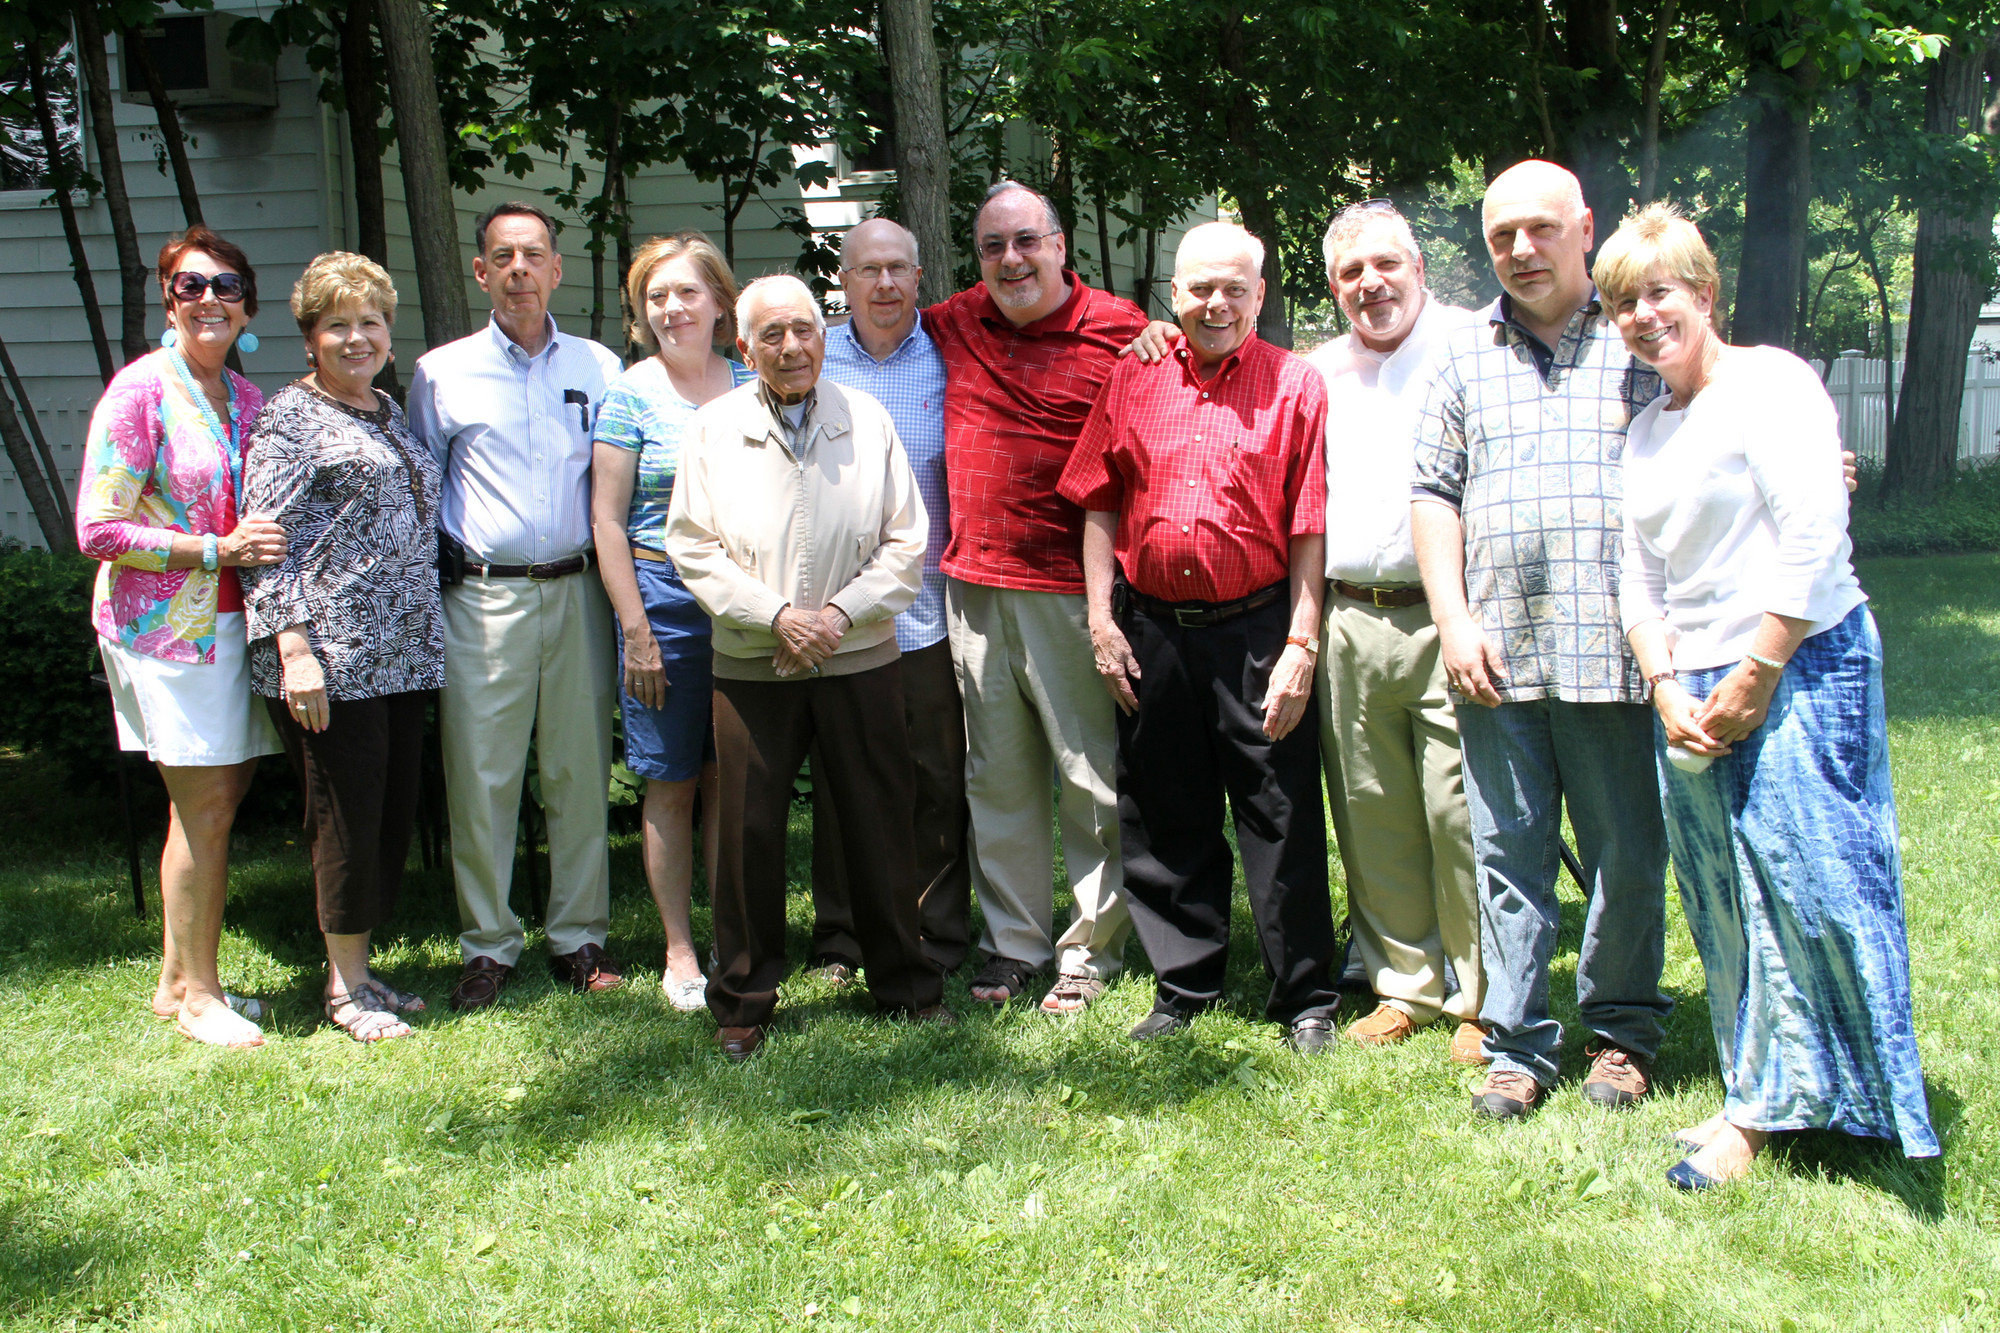 Board Members Tricia Cook, Rosalie Pampillonia, Village Historian David Weinstein, Candace Baranello, Vito Ilardi, Phil Ballin, Ed Hassel, Deputy Mayor Joseph Hennessy, President Robert Powers, John Soran and Mayor Patti McDonald.